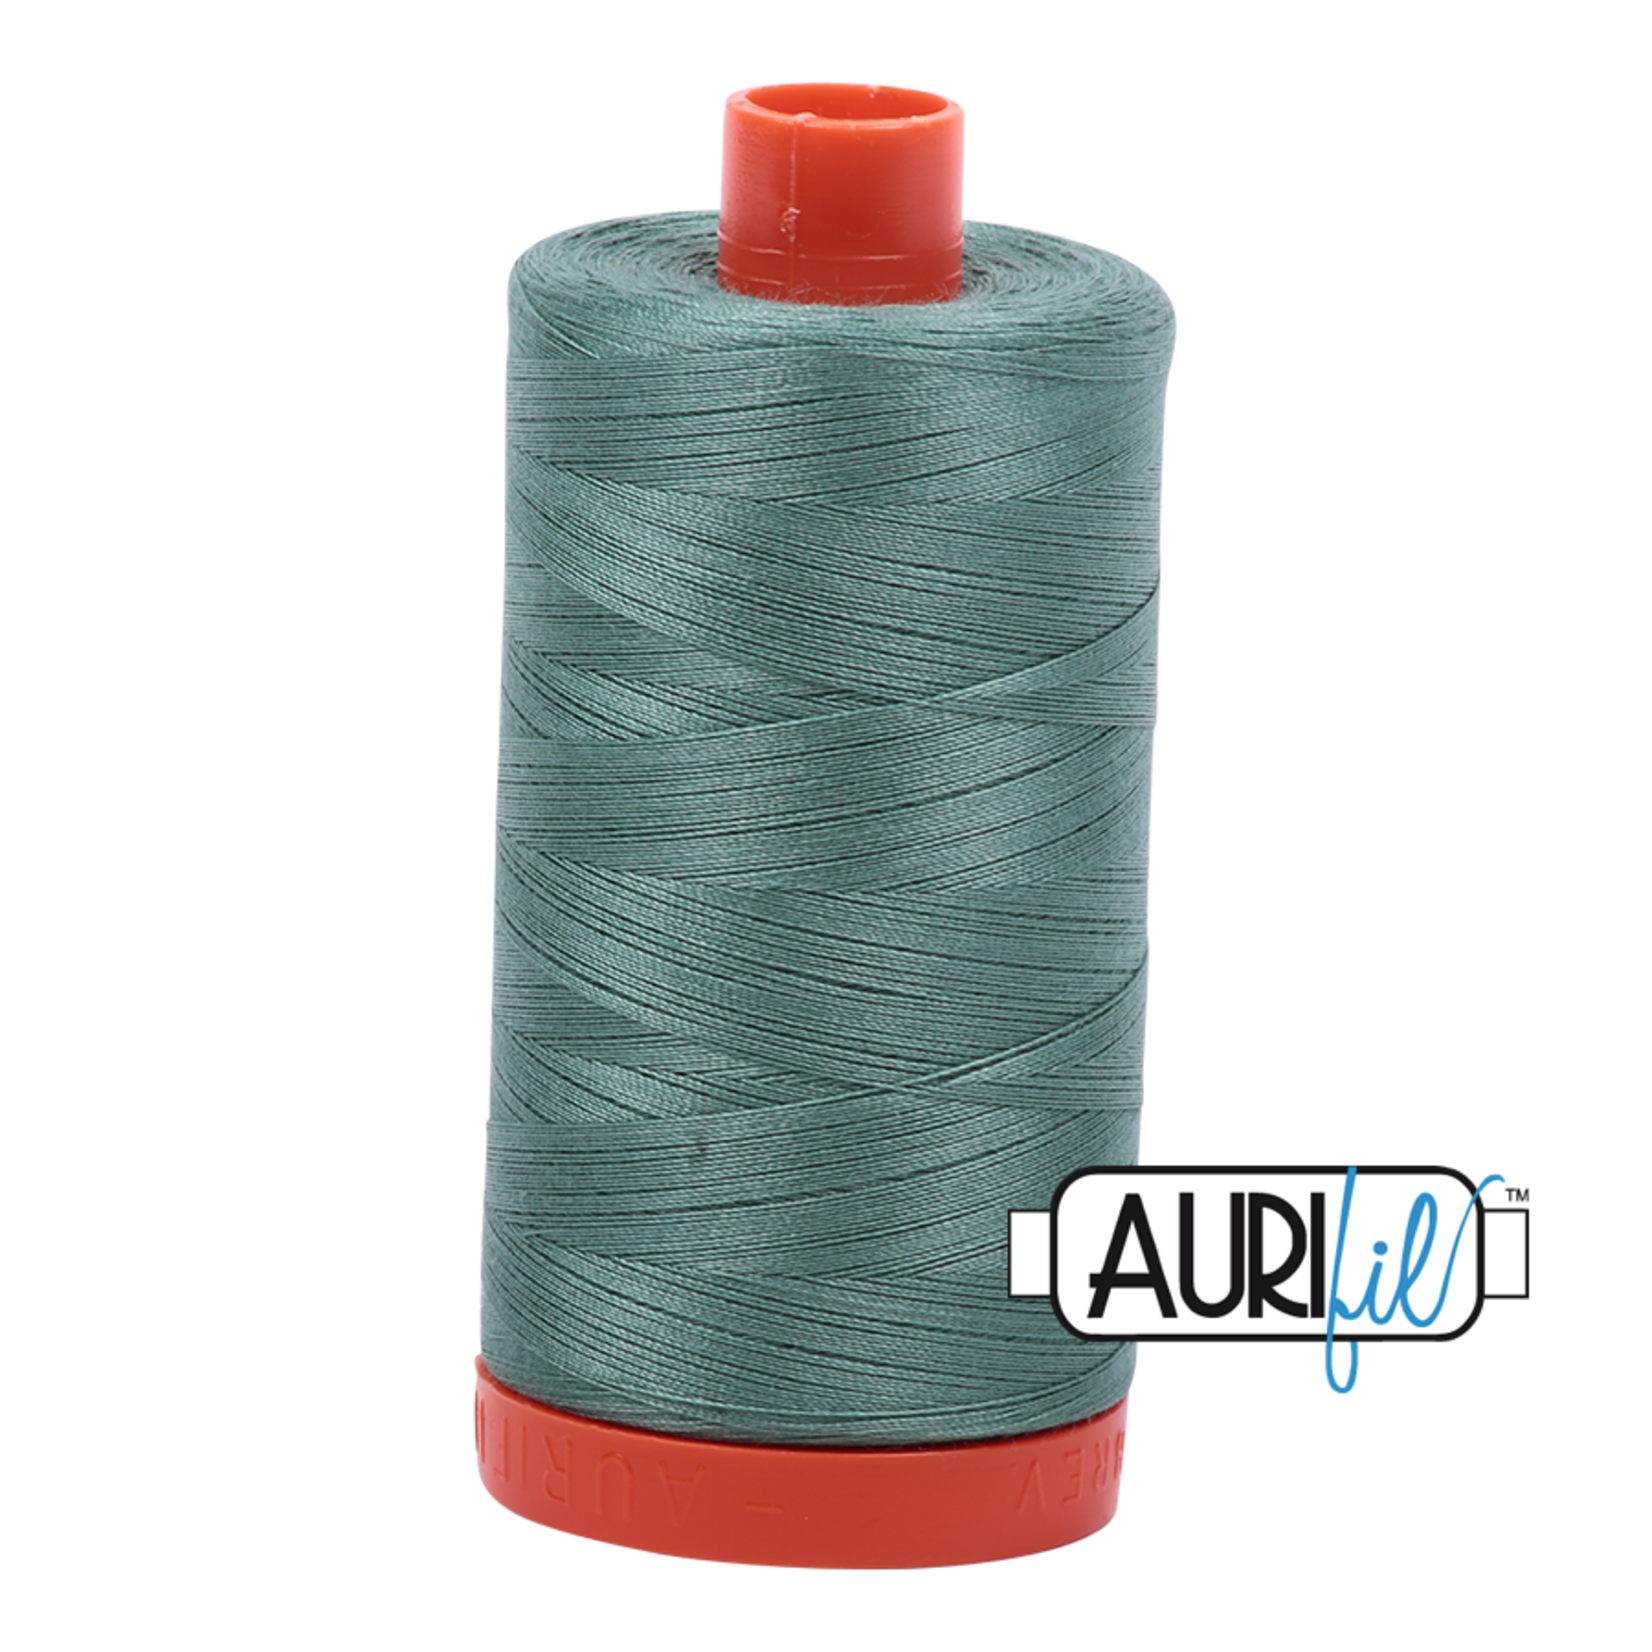 AURIFIL AURIFIL 50 WT Medium Juniper 2850